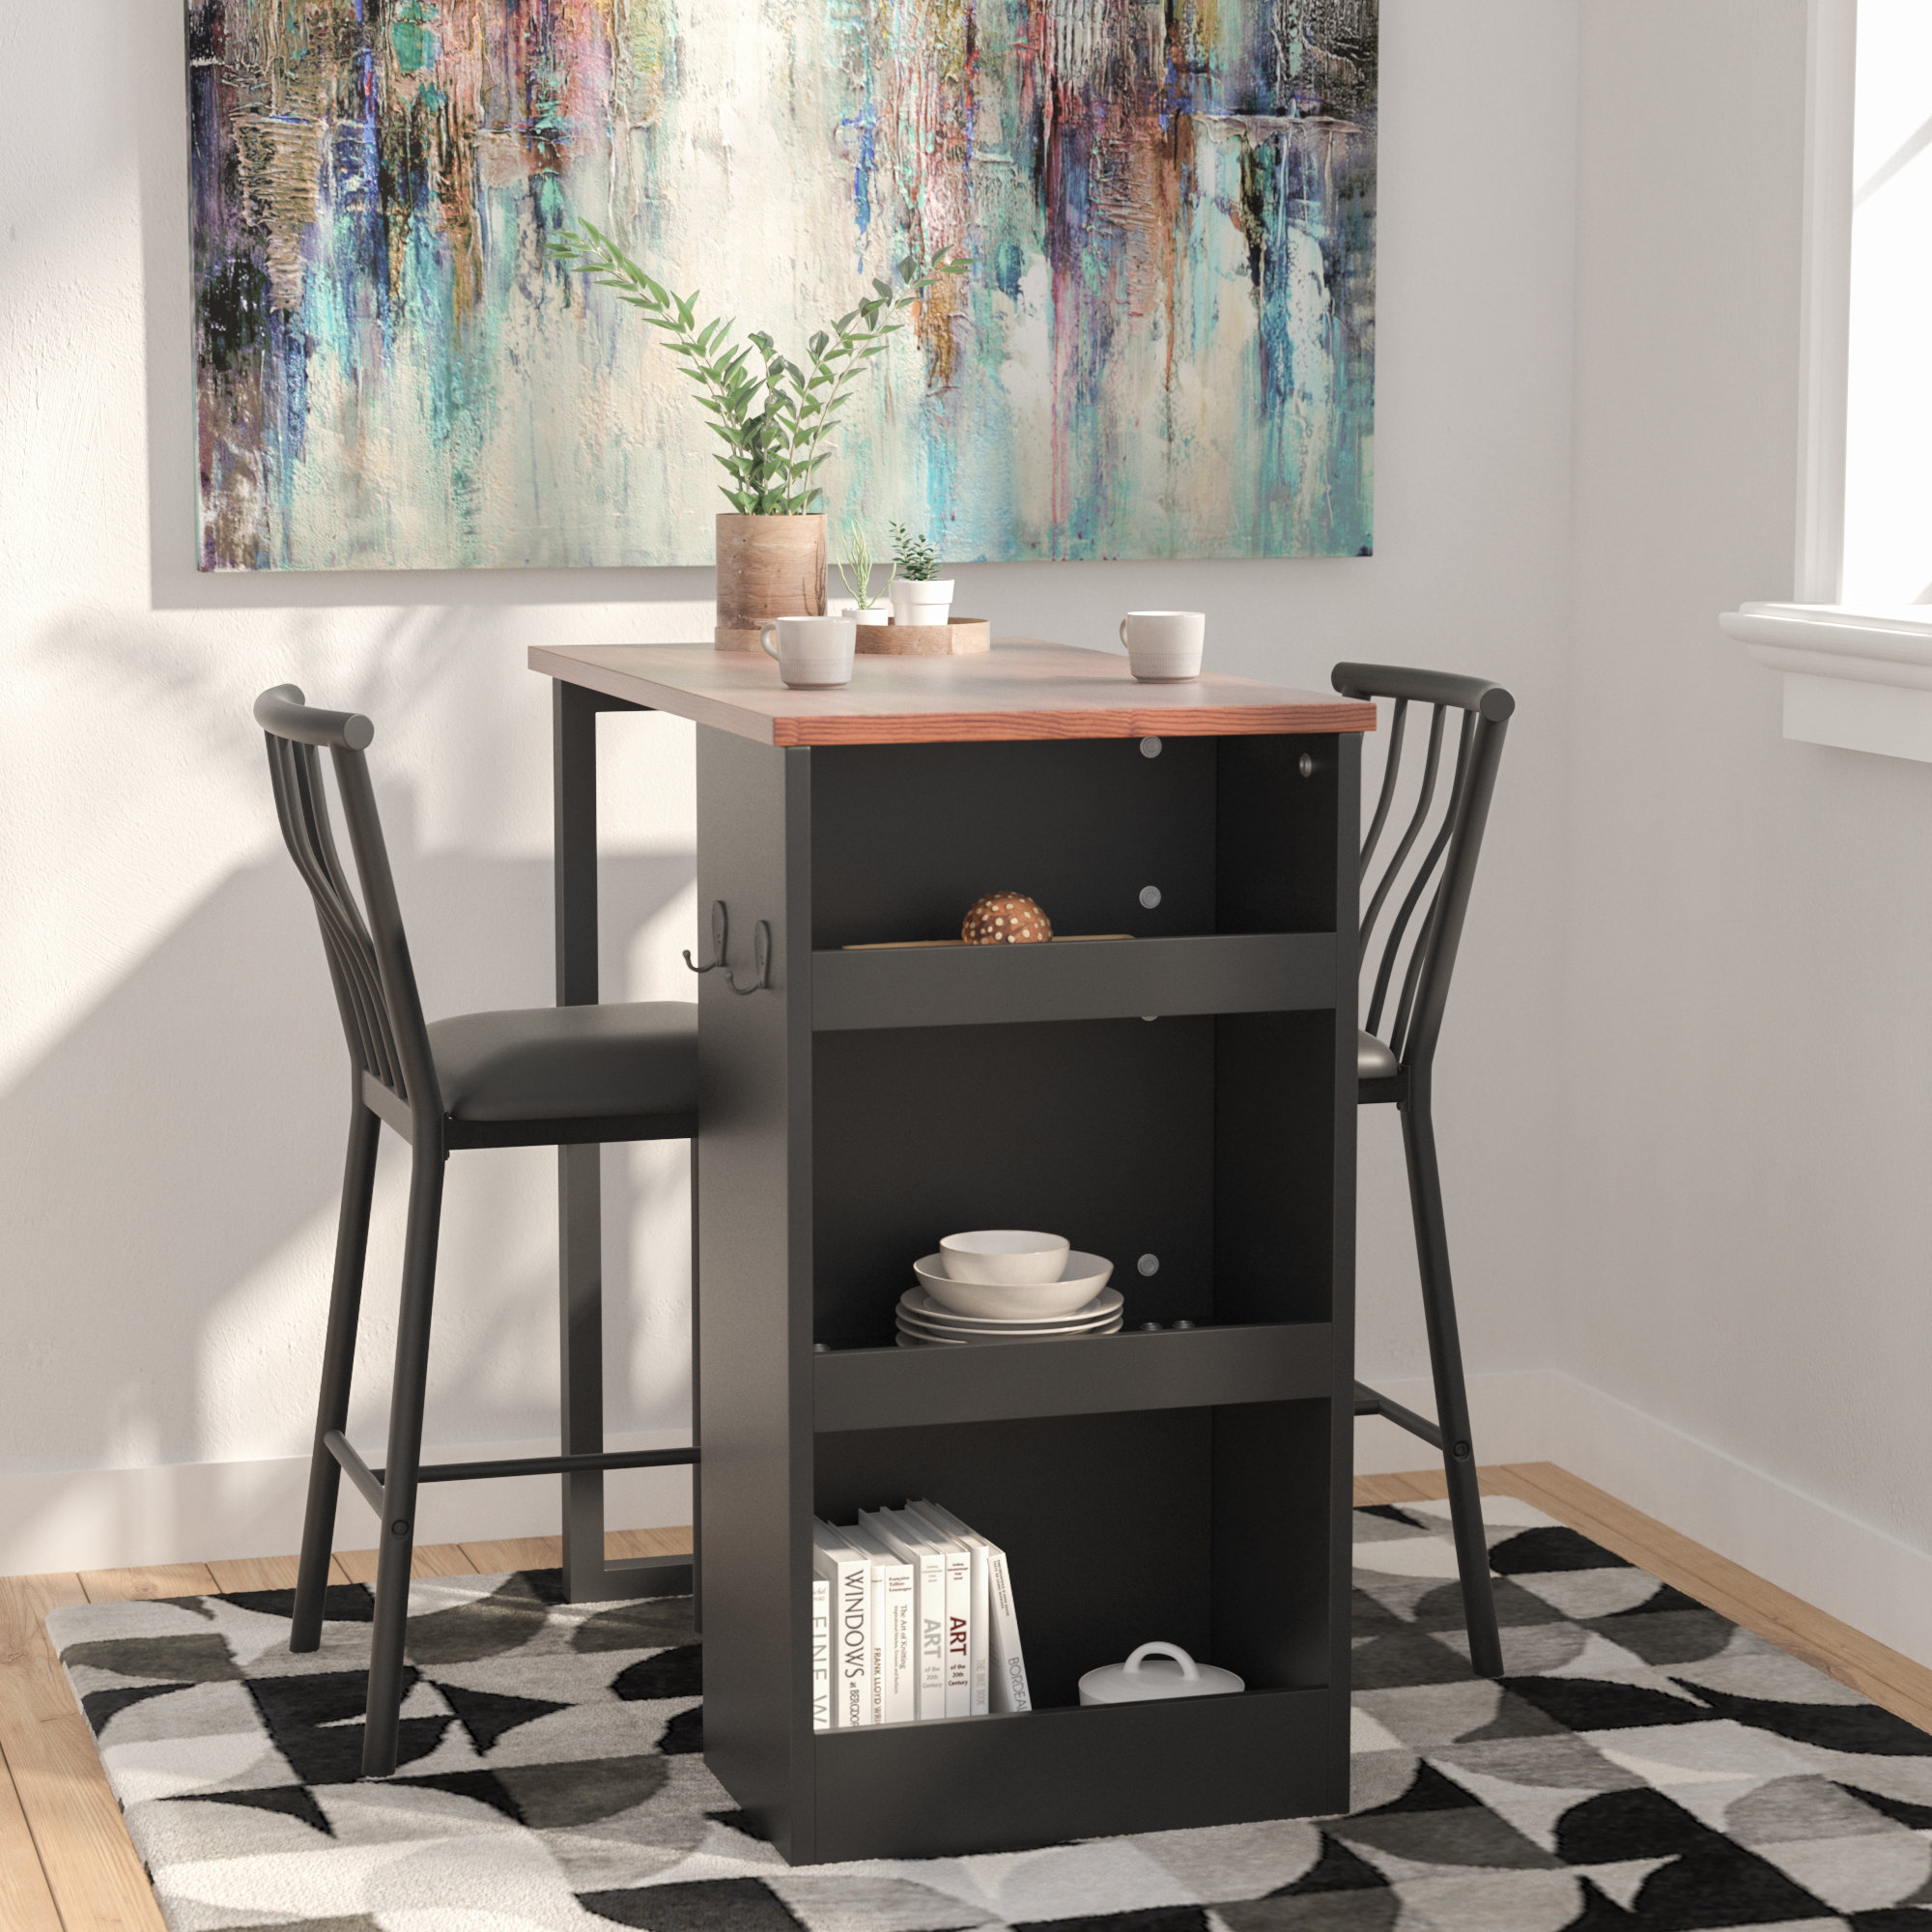 36 Inch Counter Height Table | Wayfair with regard to Parsons Grey Solid Surface Top & Stainless Steel Base 48X16 Console Tables (Image 7 of 30)